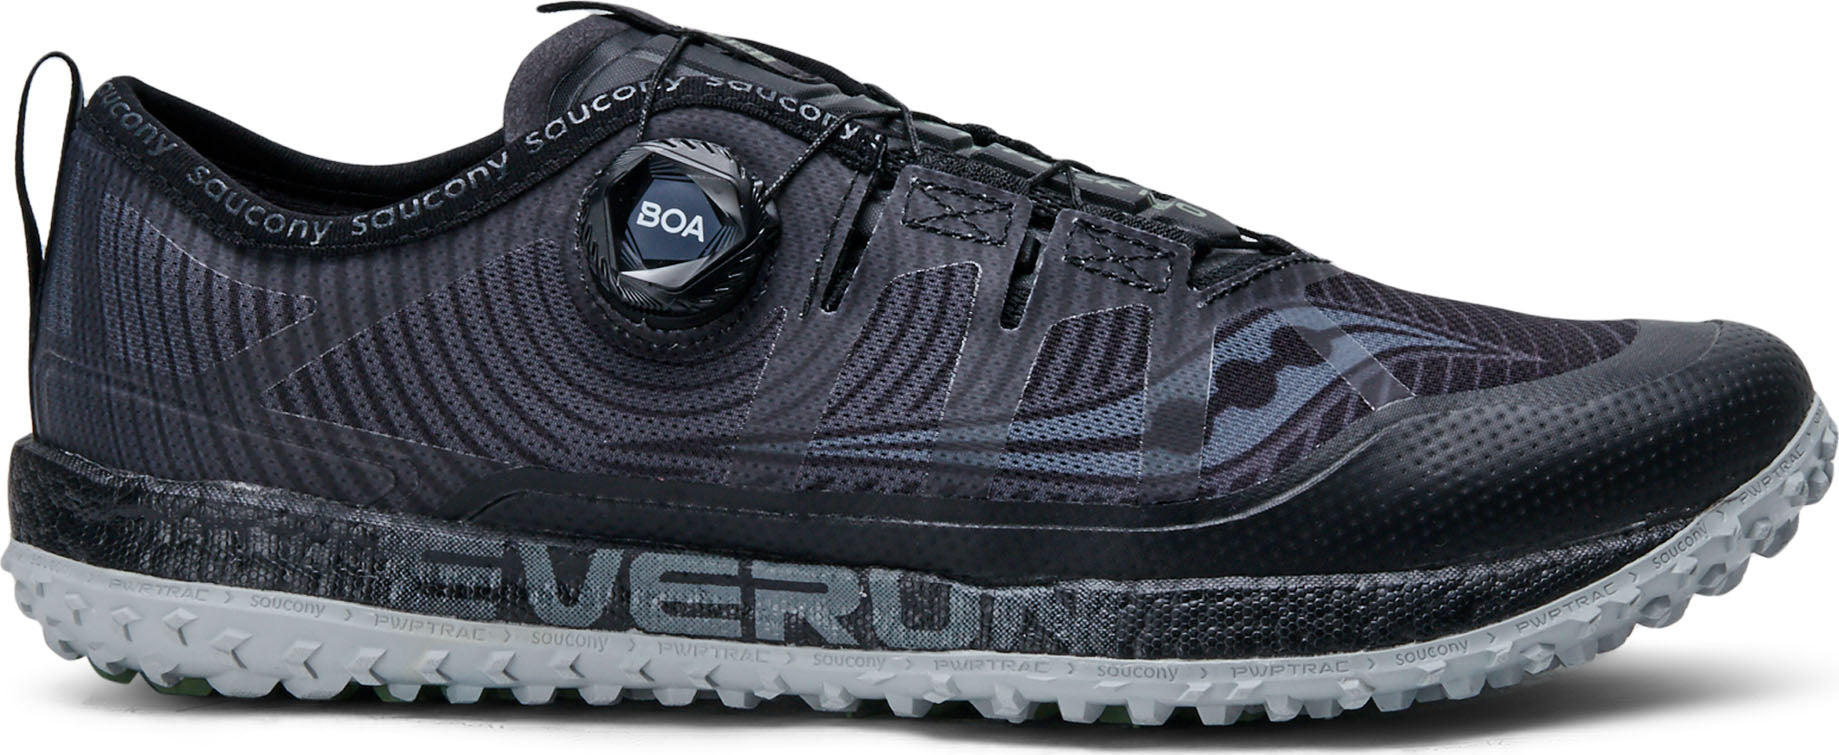 Saucony Switchback Iso Trail Running